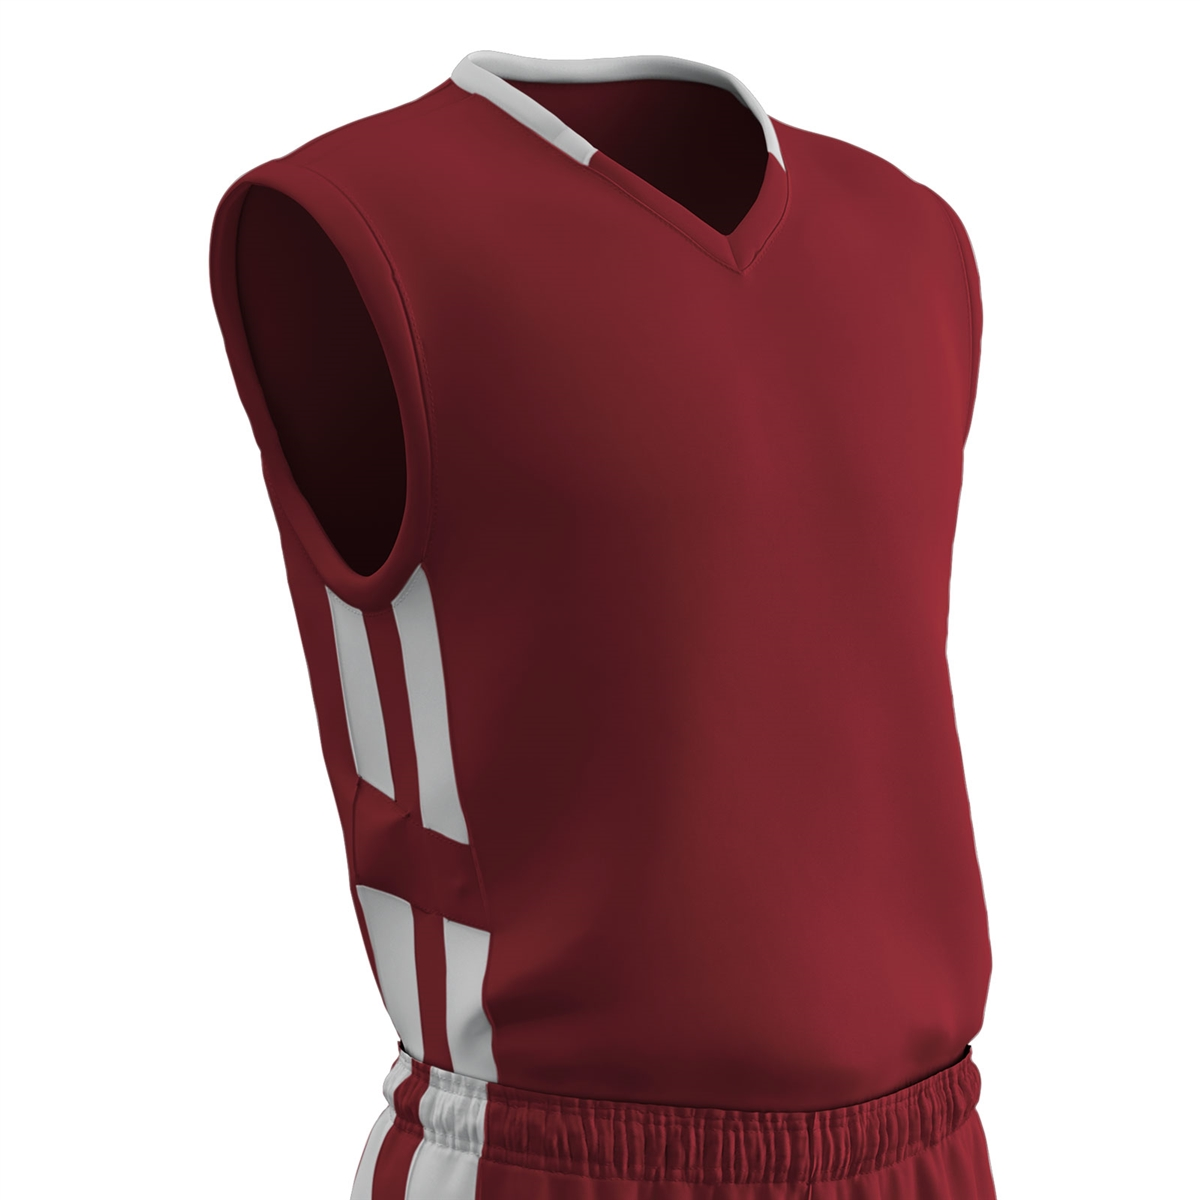 2c7f3b96d22 Champro Muscle Dri Gear Basketball Jersey Larger Photo Email A Friend